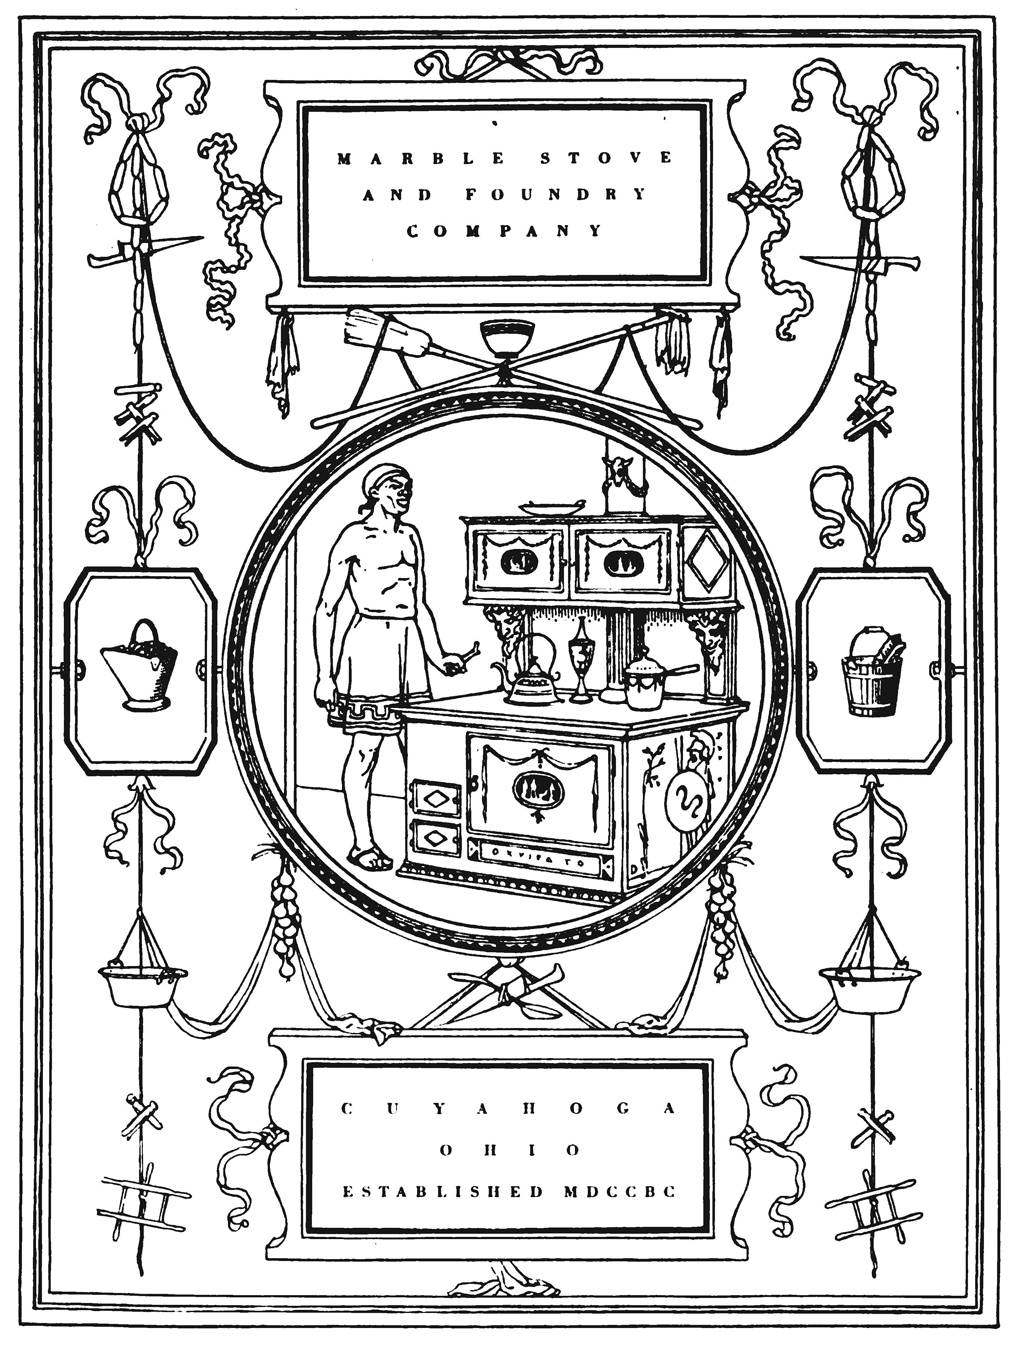 "Marble Stove and Foundry Company advertisement attributed to Thomas Maitland Cleland. From ""Drawings that Sell Goods"" by Hermann Püterschein in The Printing Art vol. XXVIII, no. 1 (September 1916). Design by W.A. Dwiggins."